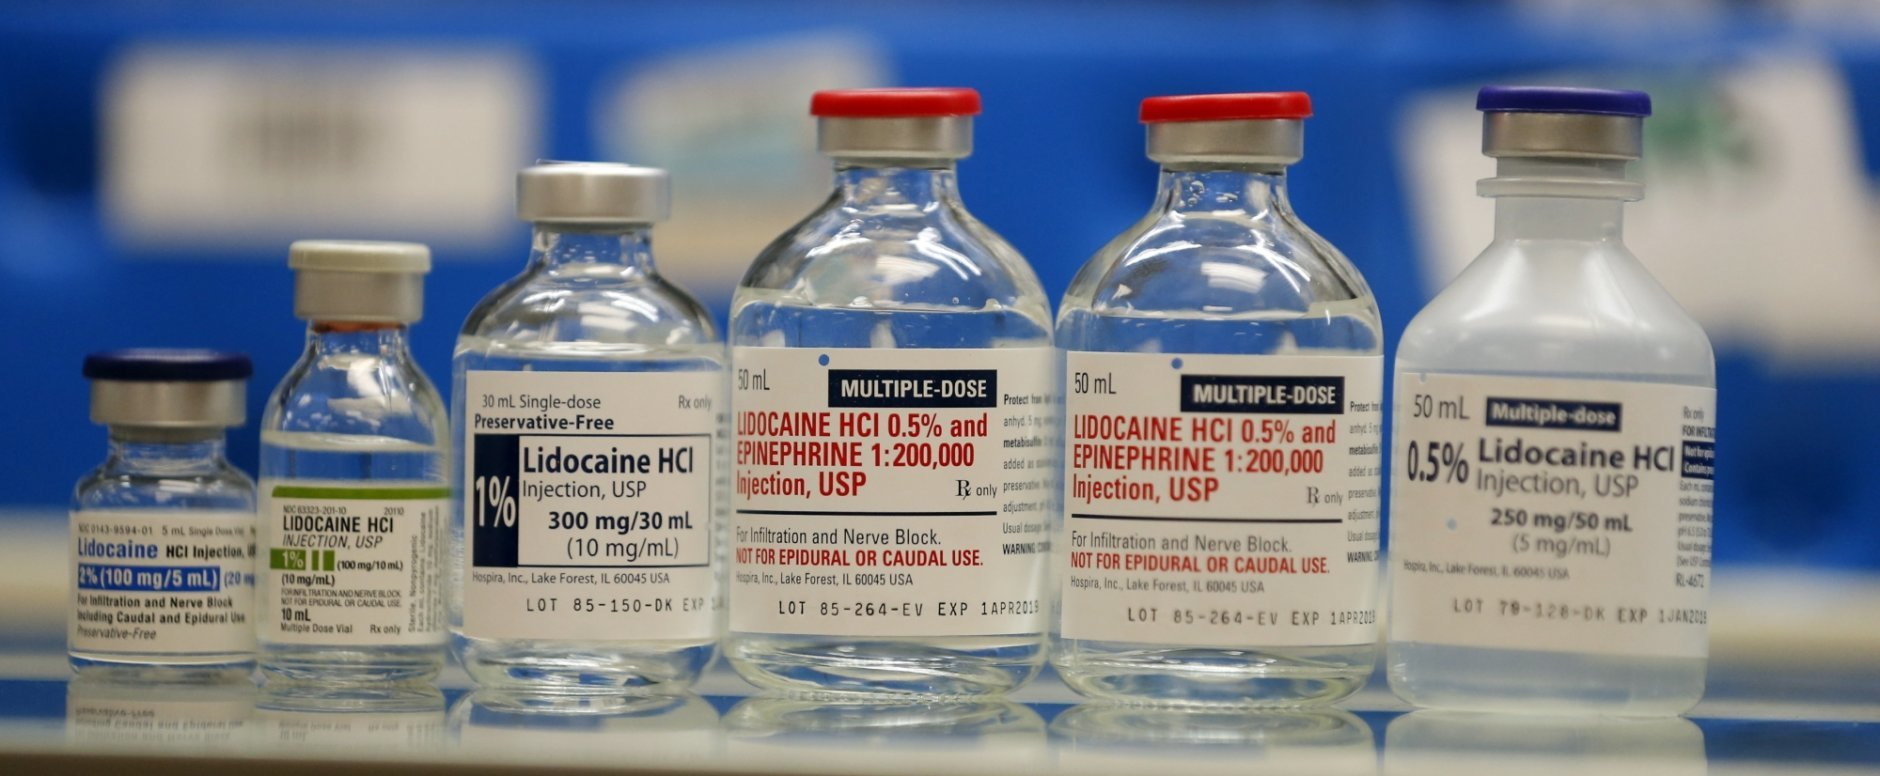 In this Friday, June 1, 2018, photo, vials of the local anesthetic lidocaine, currently in short supply, are shown in the inpatient pharmacy at the University of Utah Hospital in Salt Lake City. Amid the nation's opioid epidemic, hospitals are struggling to get widely used injected pain medicines because of ongoing supply shortages. The shortages affect just about every corner of the hospital, from the operating room and emergency department. (AP Photo/Rick Bowmer)